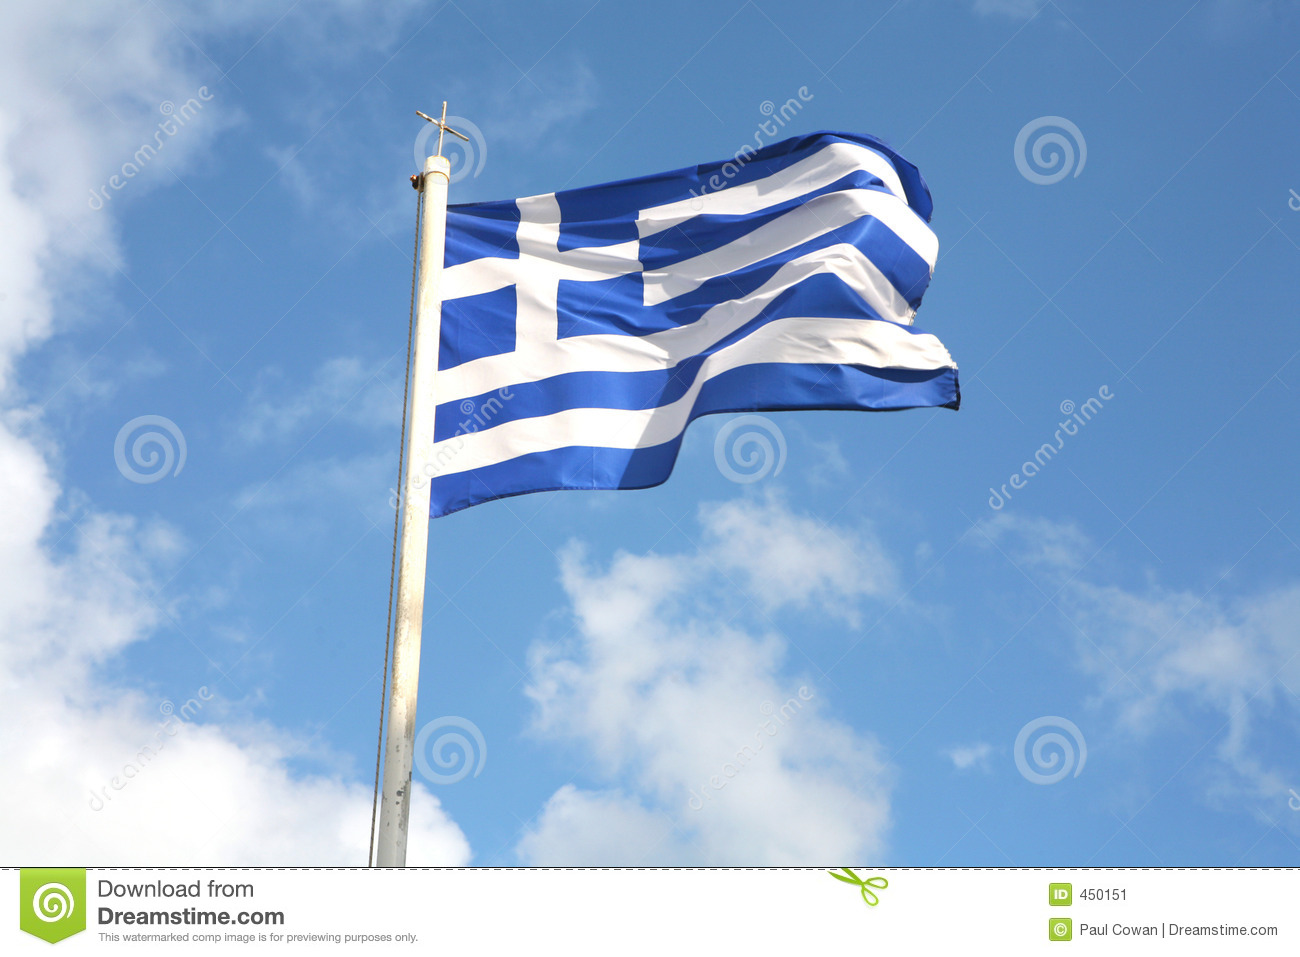 Download Greek flag stock image. Image of stripes, pride, pole, flagpole - 450151